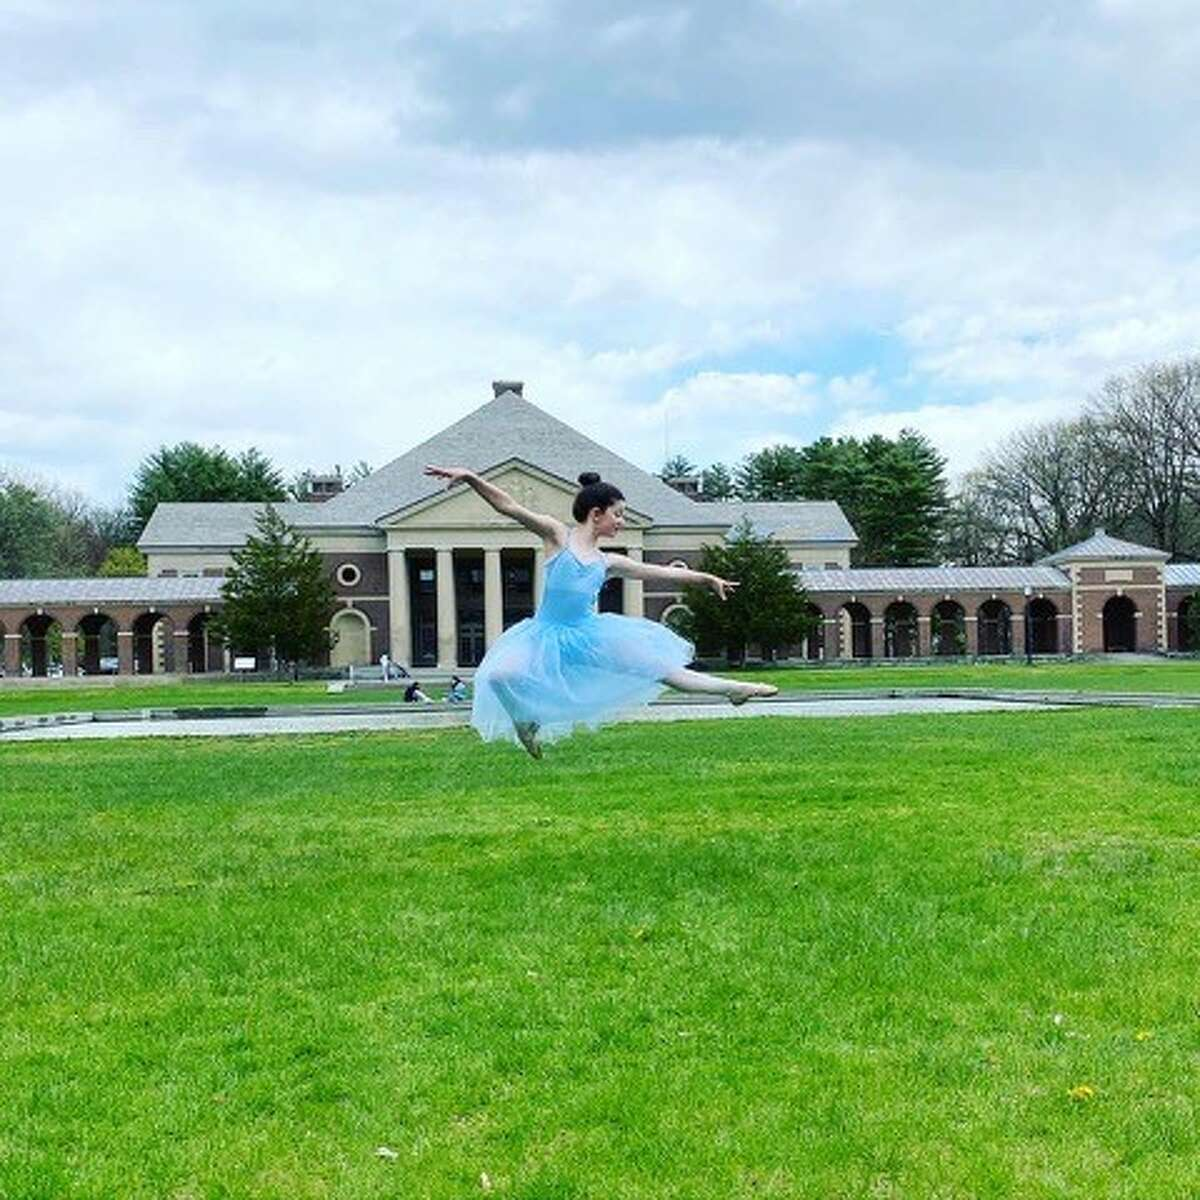 SPAC's Elizabeth Sobel said the venue was in ongoing discussions with its resident companies, New York City Ballet, Philadelphia Orchestra and Chamber Music Society of Lincoln Center: